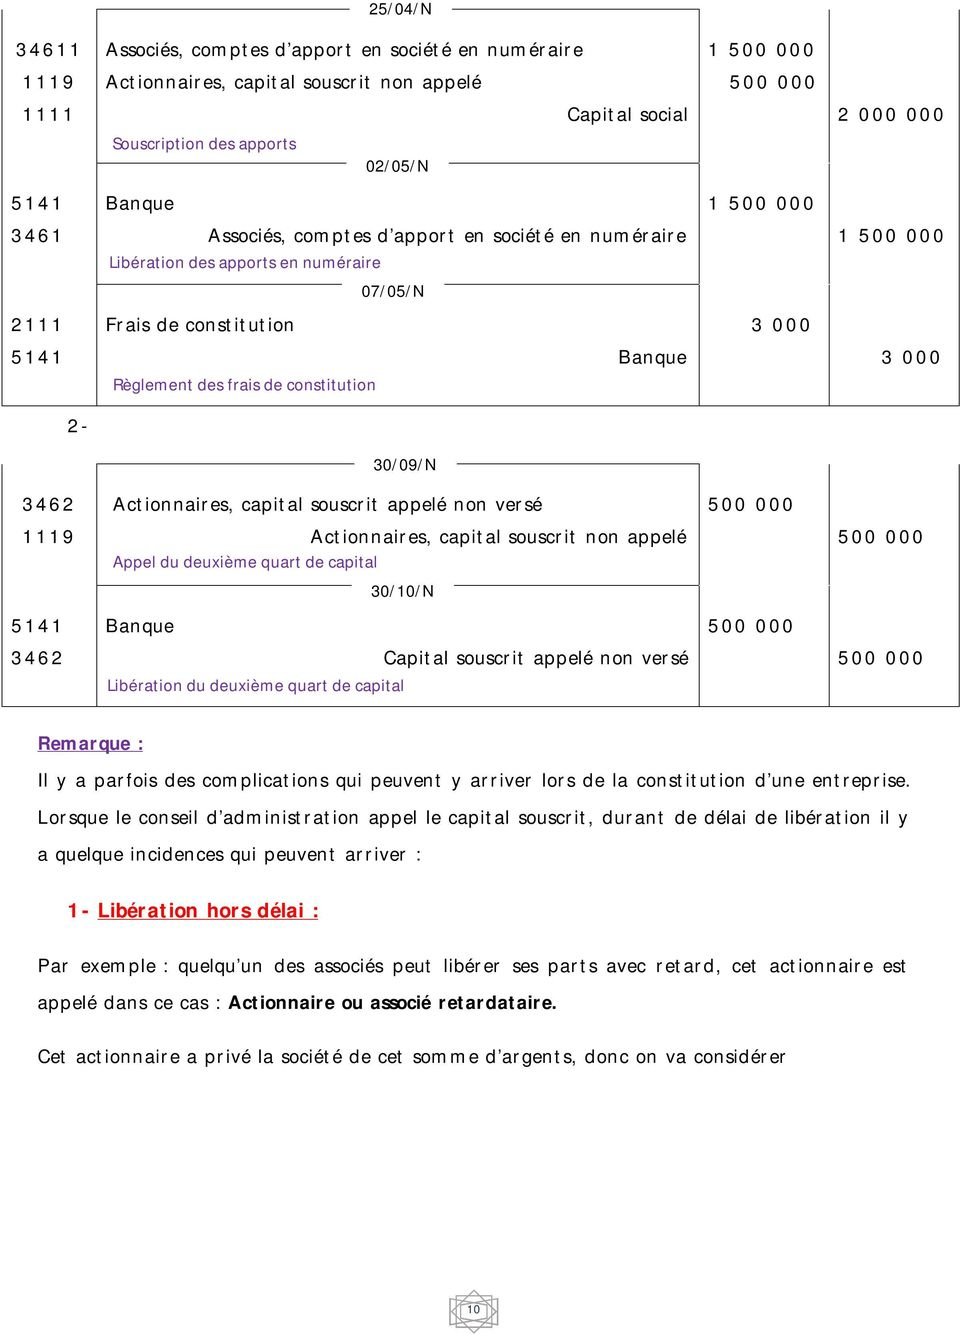 2-30/09/N 3462 Actionnaires, capital souscrit appelé non versé 500 000 1119 Actionnaires, capital souscrit non appelé Appel du deuxième quart de capital 500 000 30/10/N Banque 500 000 3462 Capital